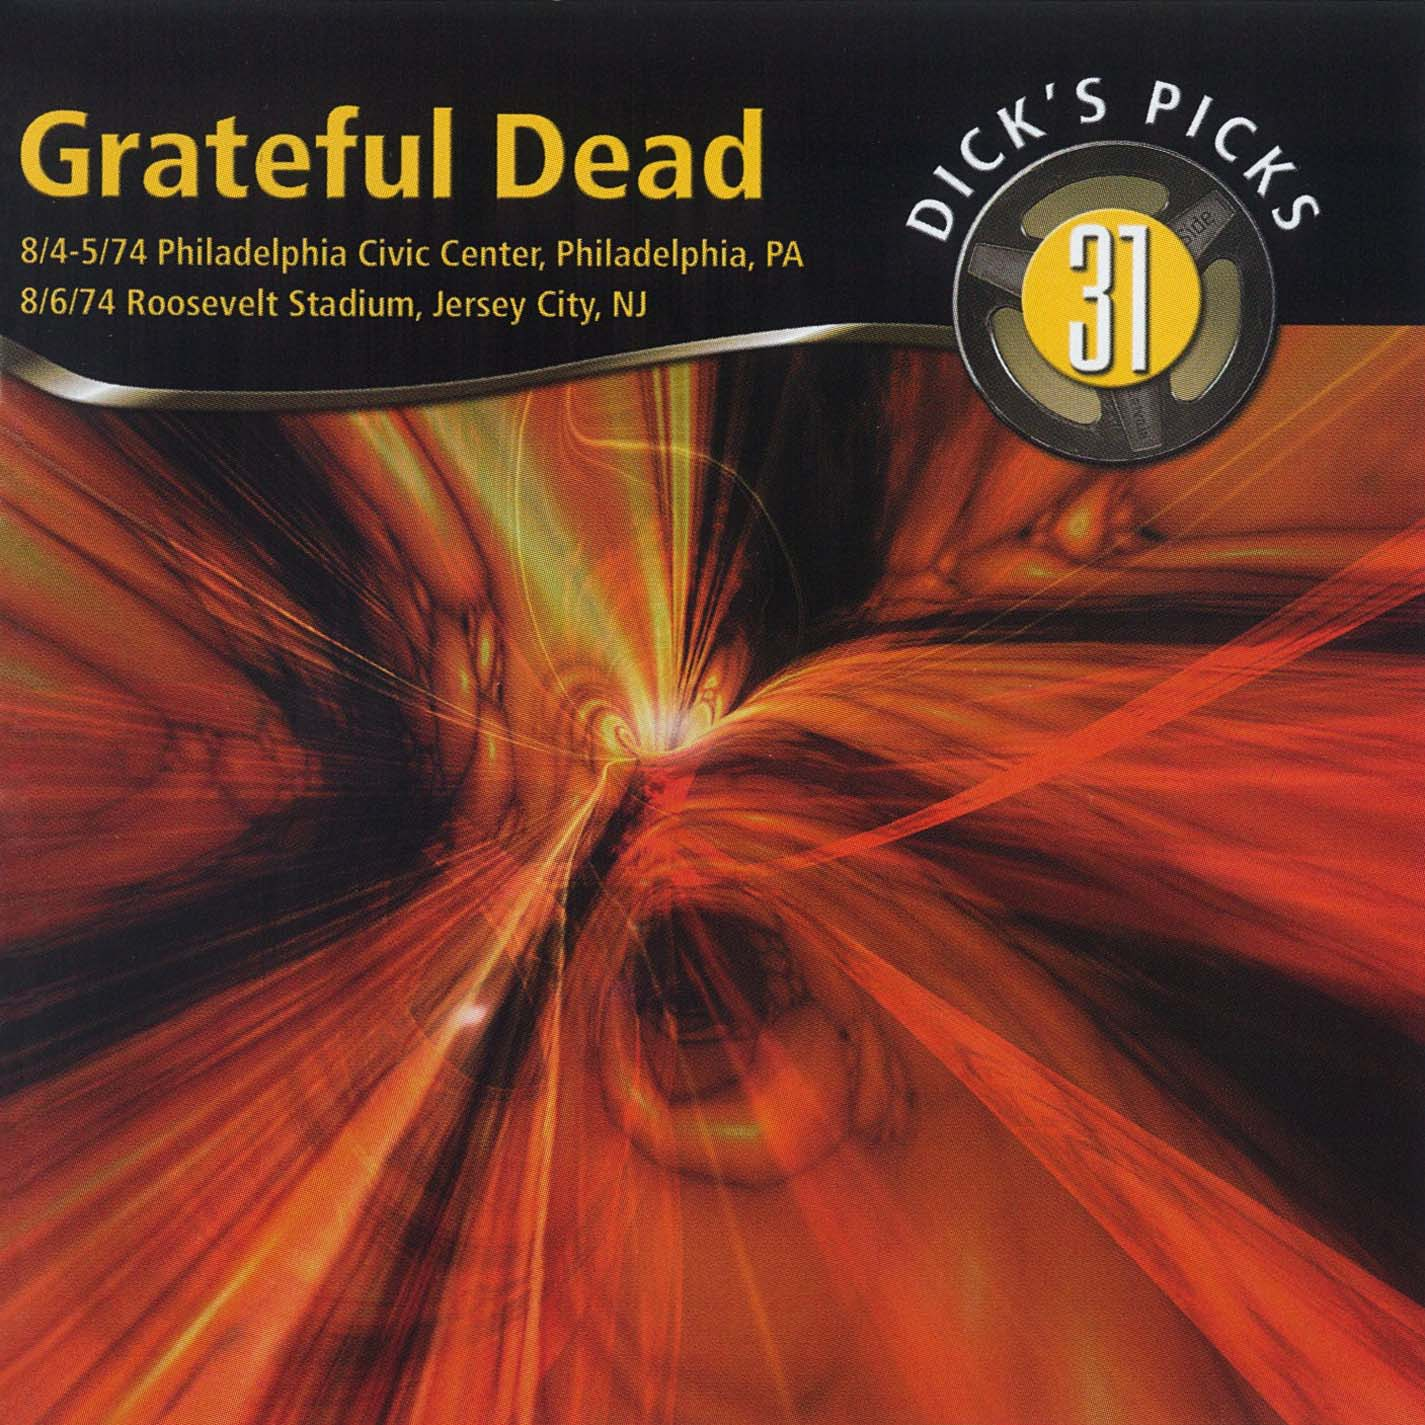 Grateful Dead Dick's Picks 31 album cover artwork